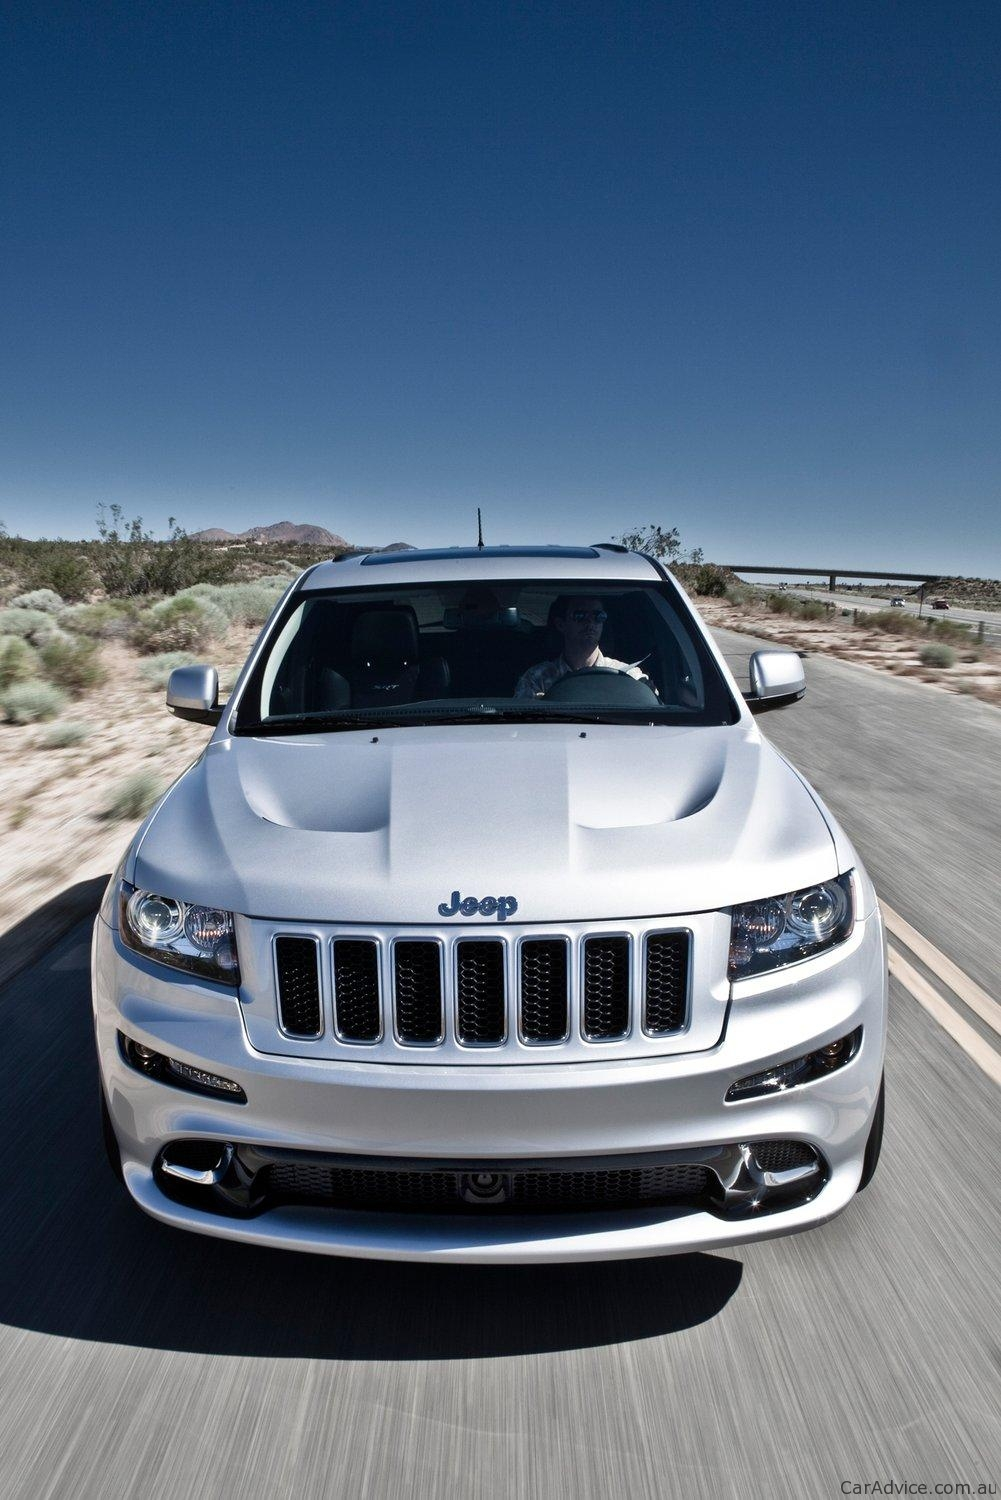 2012 jeep grand cherokee srt8 on sale in australia in january photos 1 of 16. Black Bedroom Furniture Sets. Home Design Ideas